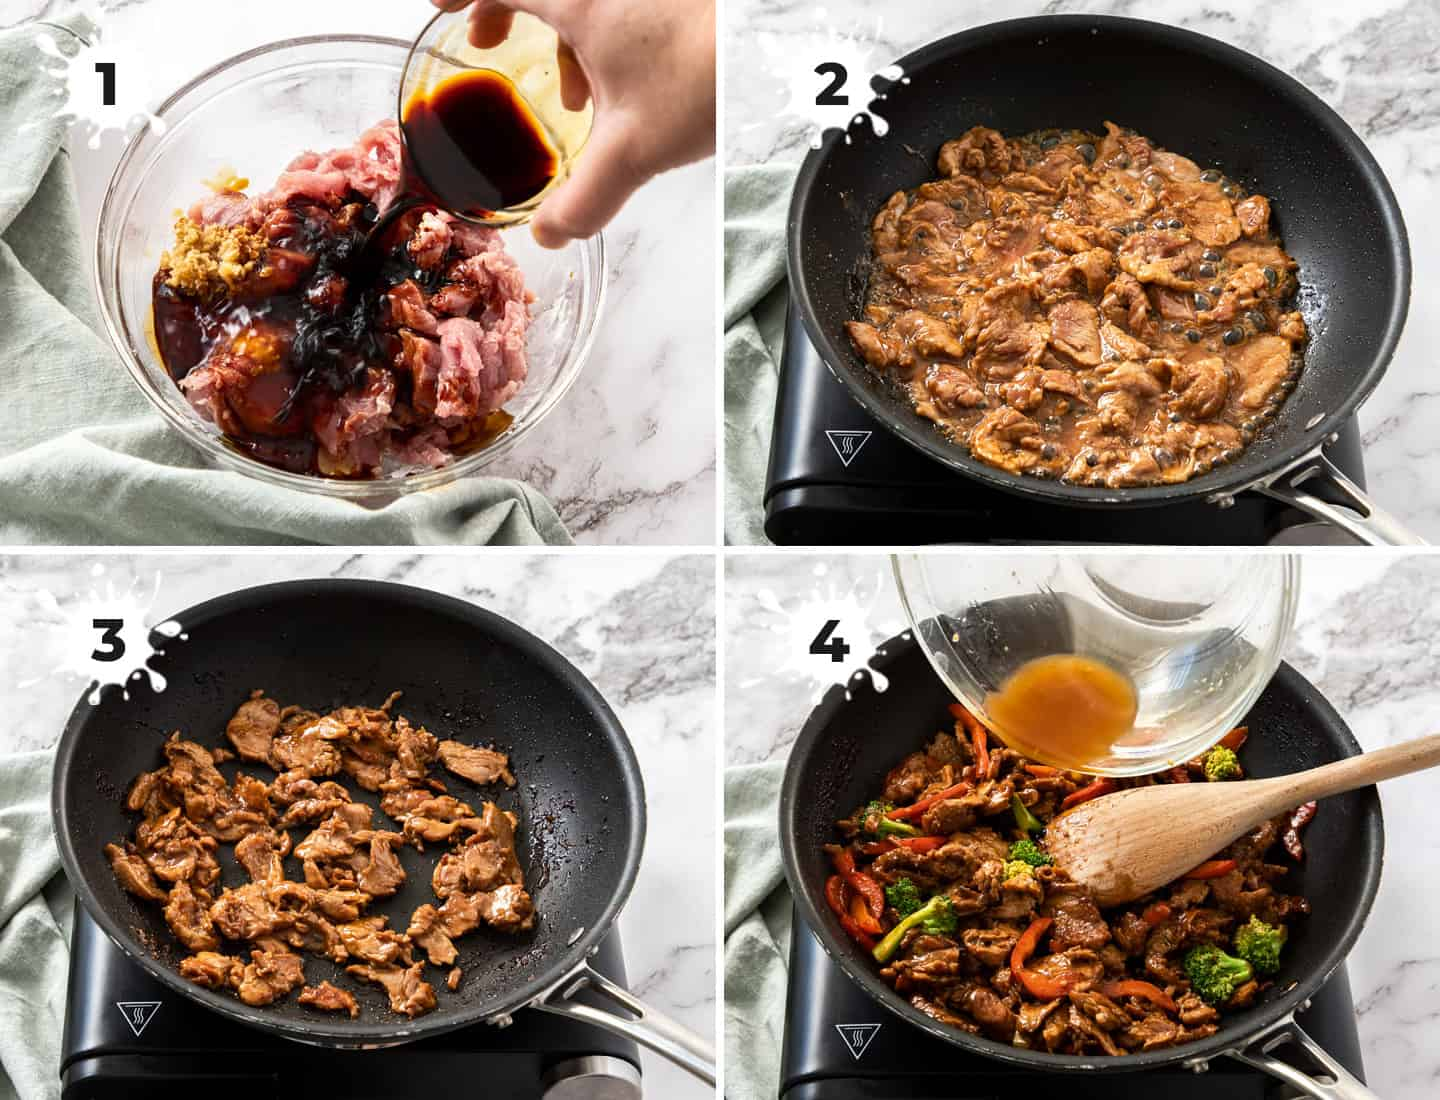 Images showing the cooking of pork stir fry in a black pan.